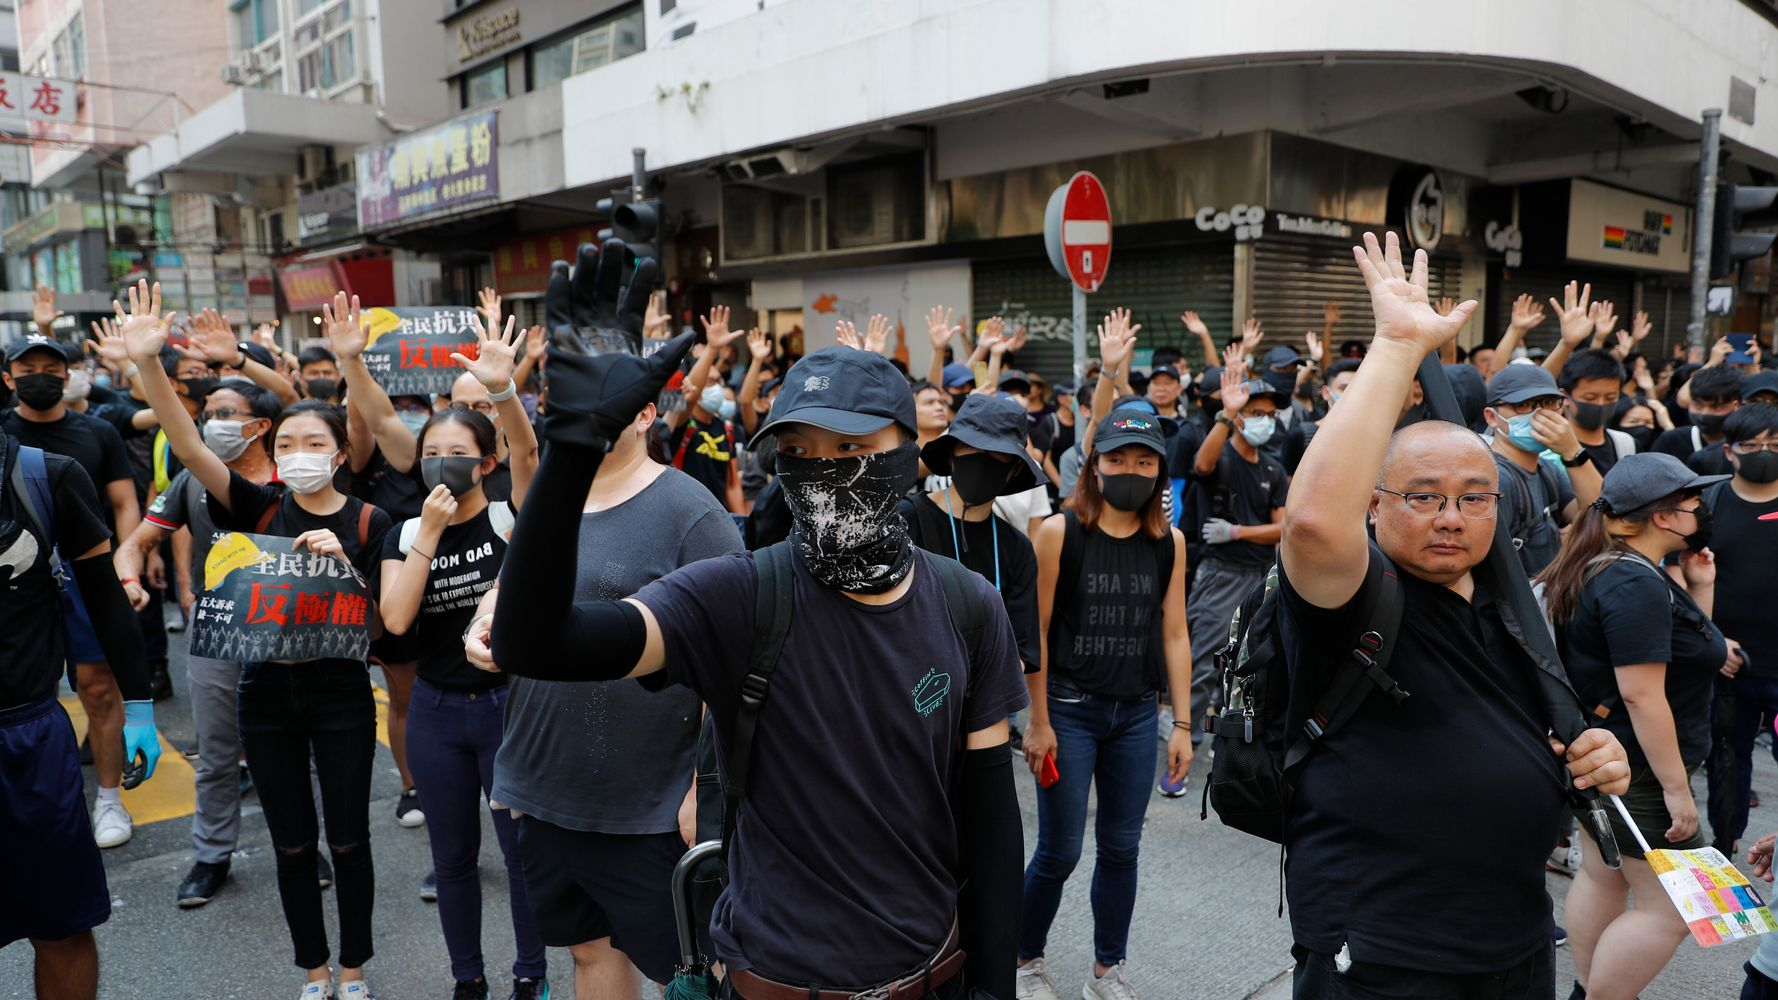 Westlake Legal Group 5d92fb8c210000330050eed1 Hong Kong Police Shoot Pro-Democracy Protester In Chest